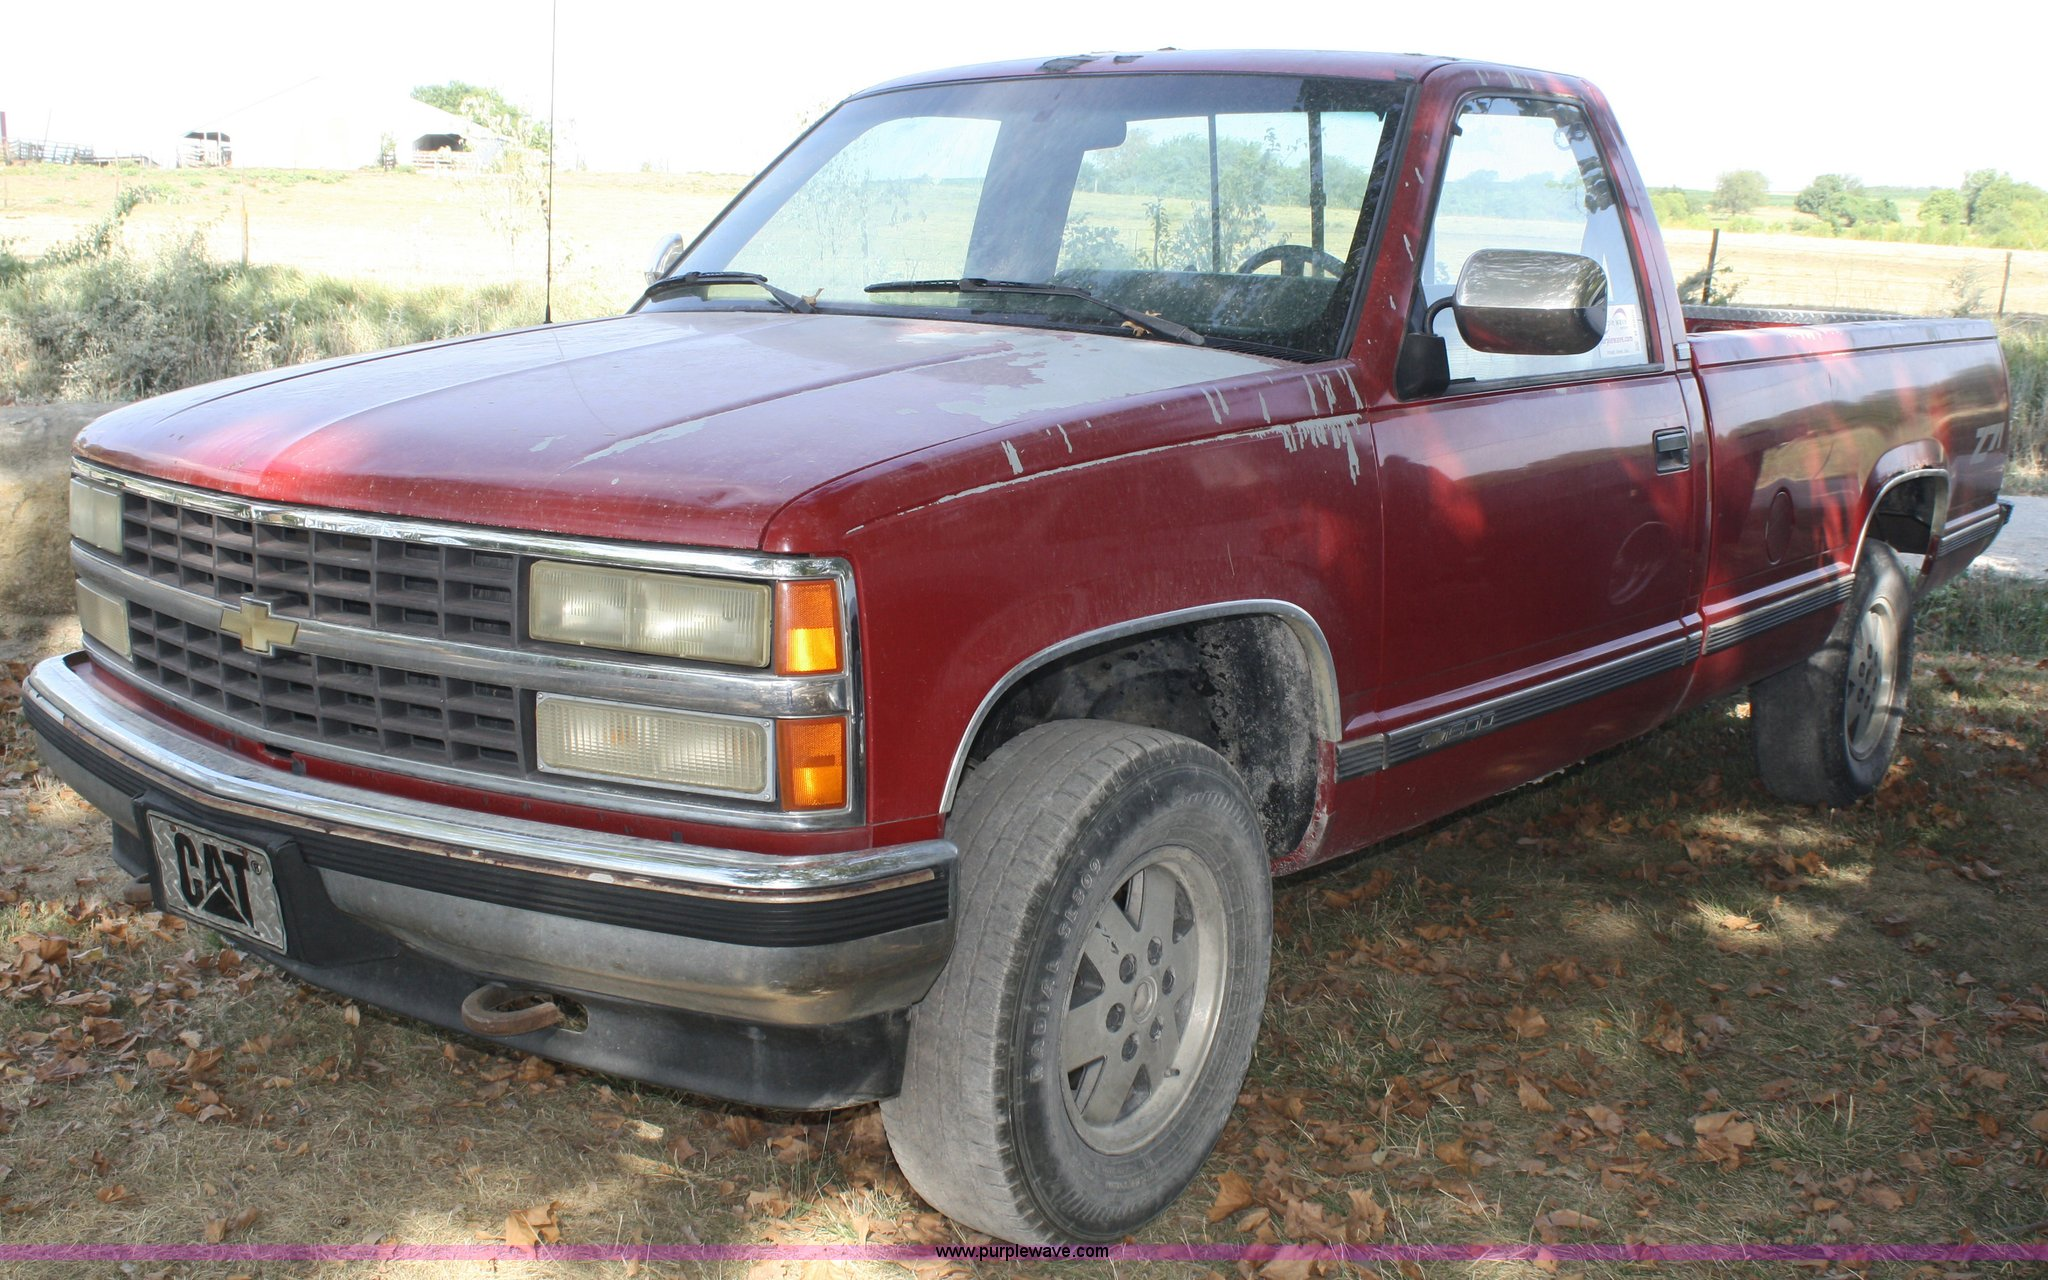 1990 chevrolet silverado 1500 pickup truck | item b6860 | so